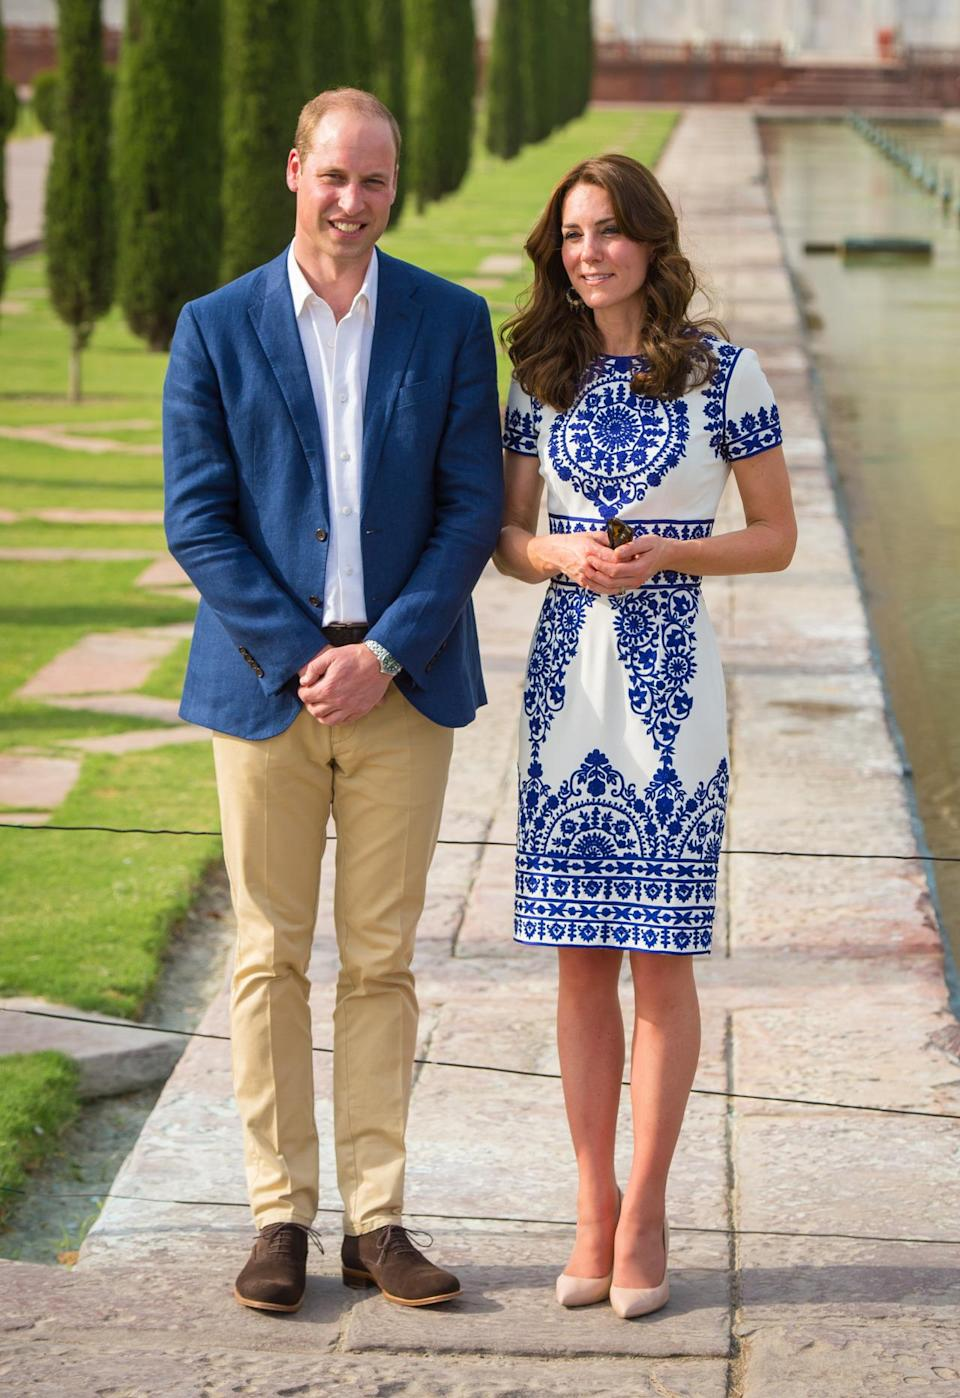 <p>The Duchess's trip to the Taj Mahal saw her in an embroidered blue-and-white dress by Indian designer Naeem Khan paired with her favourite L.K. Bennett heels. </p><p><i>[Photo: PA]</i></p>